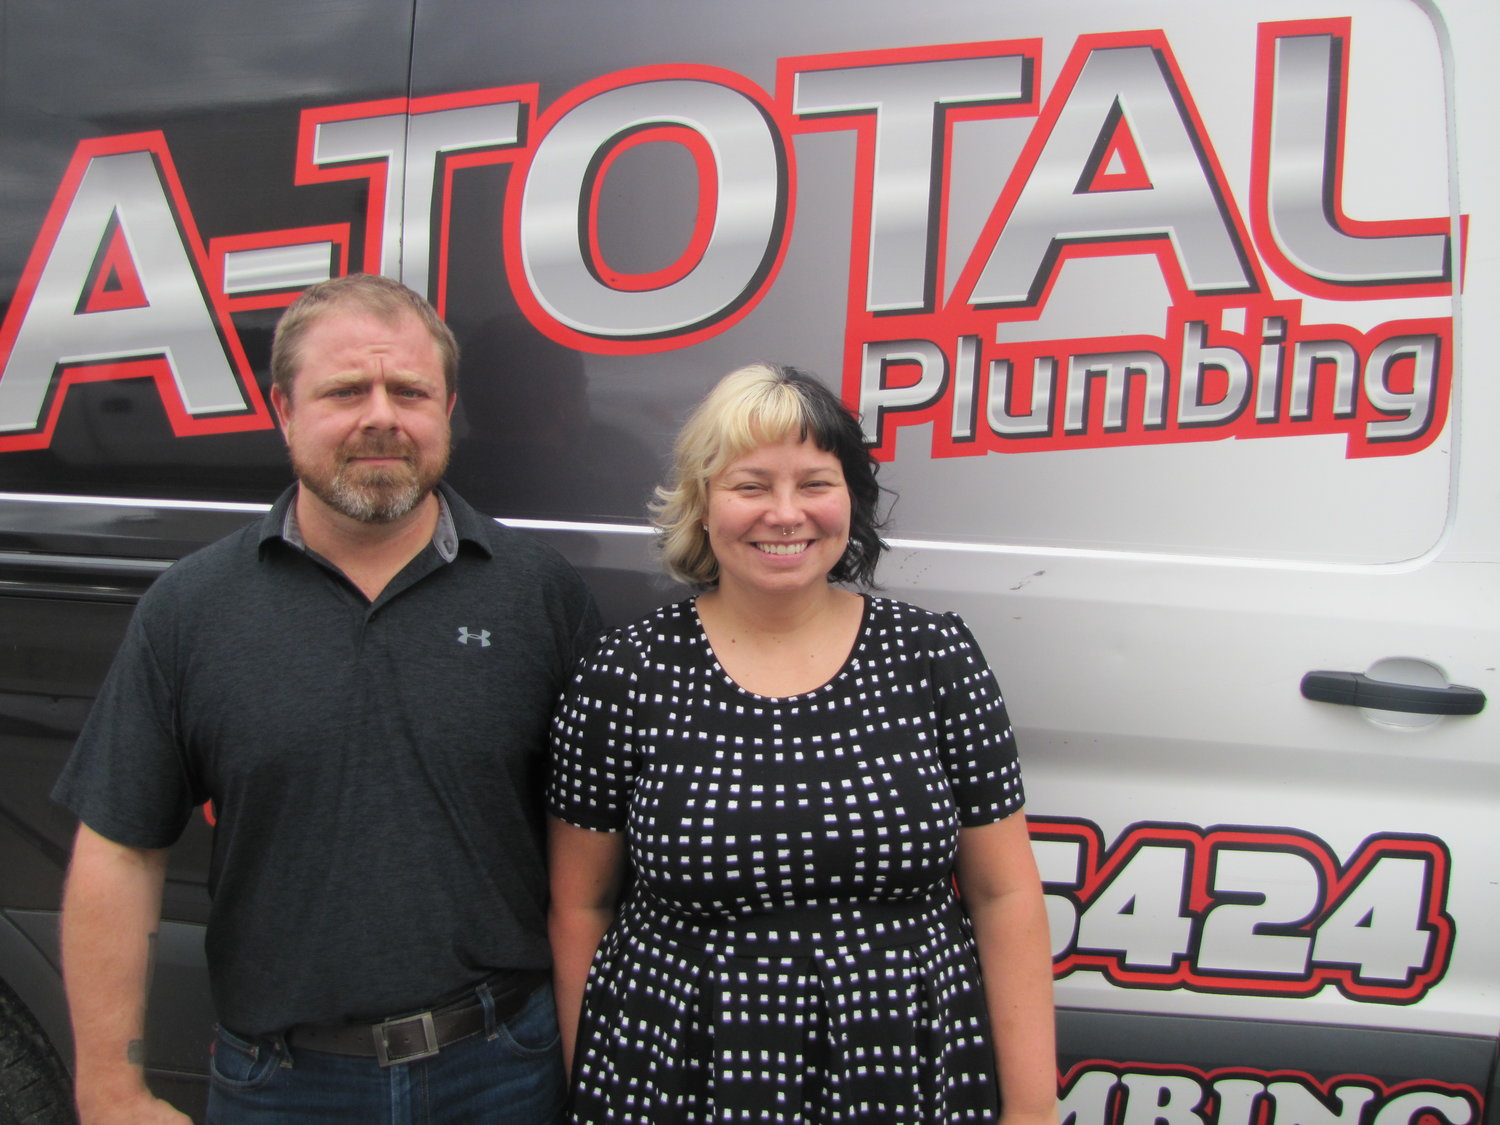 A-Total Plumbing owners, Rich and Felicia